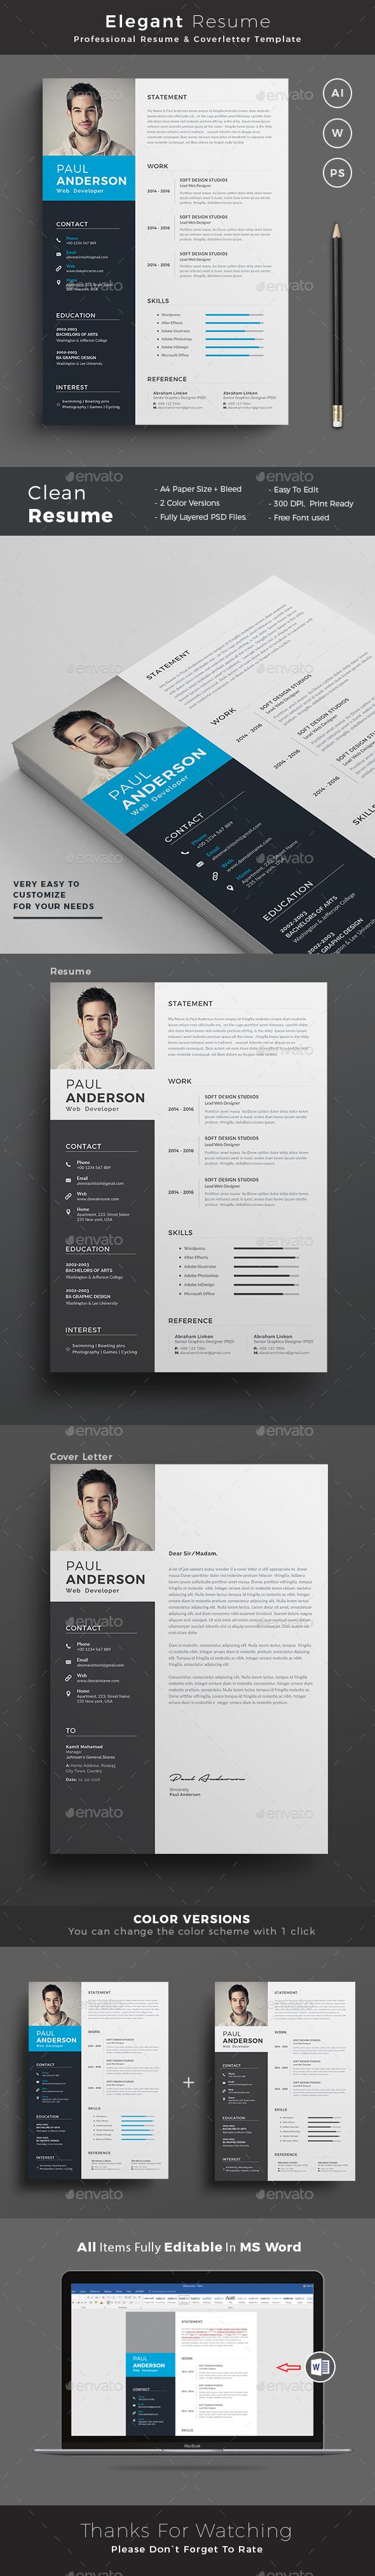 Chronological Resume Samples%0A Resume Template PSD  AI  MS Word